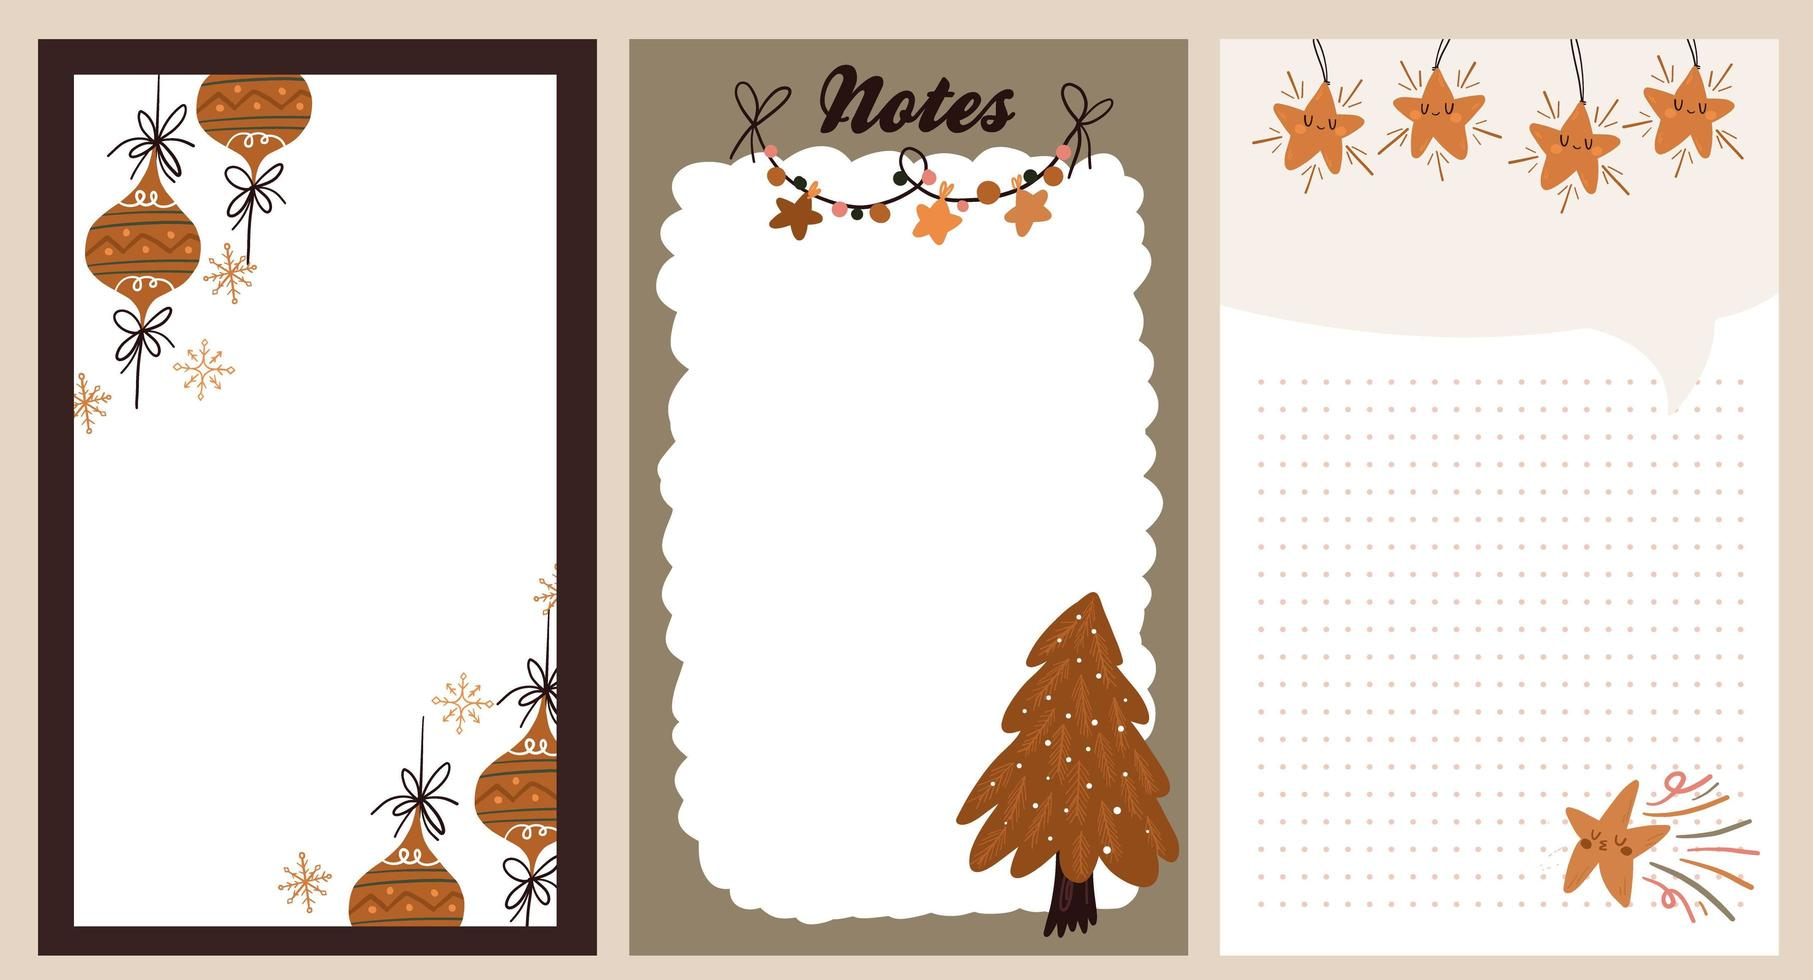 autocollant de vacances de Noël, journal, jeu de notes vecteur